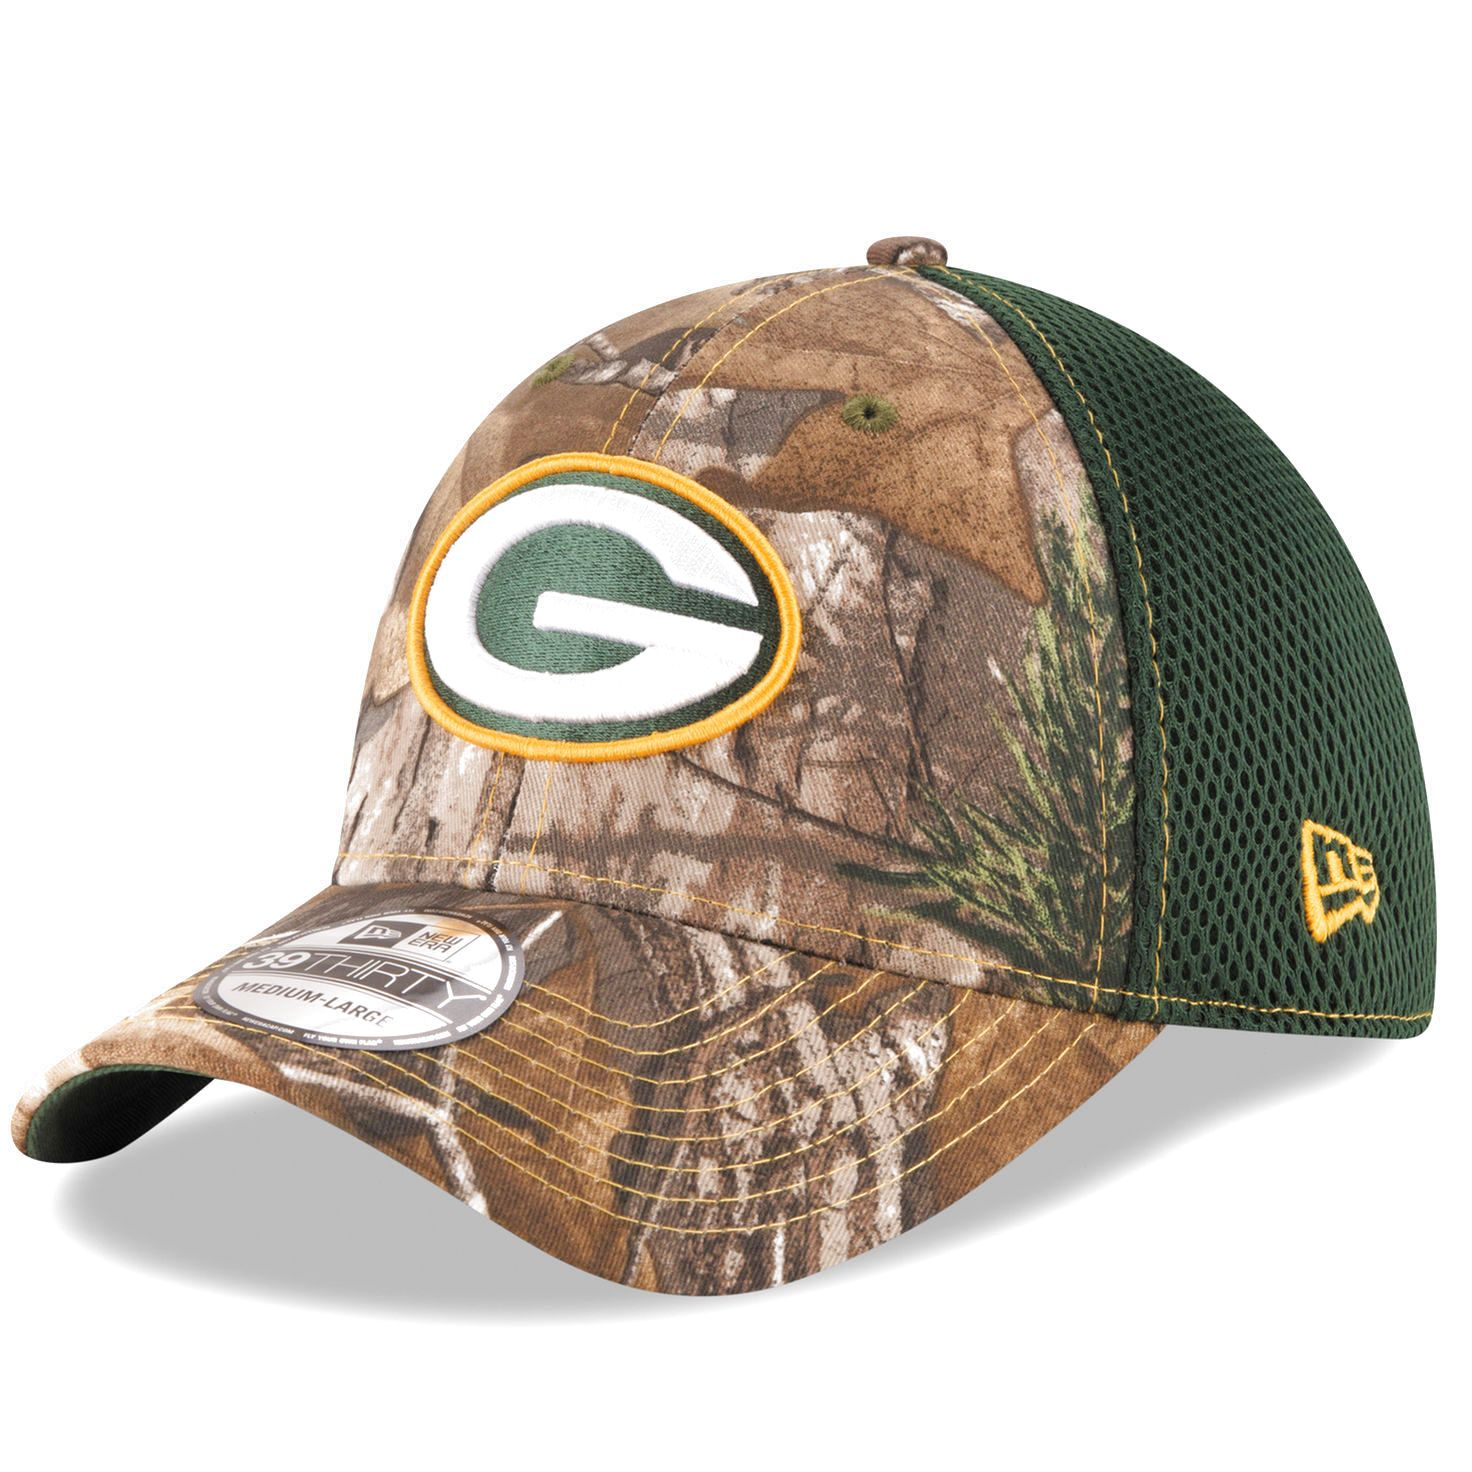 check out 18f31 7c79e ... best green bay packers new era realtree camo neo 39thirty flex hat  19.99 e3408 71b54